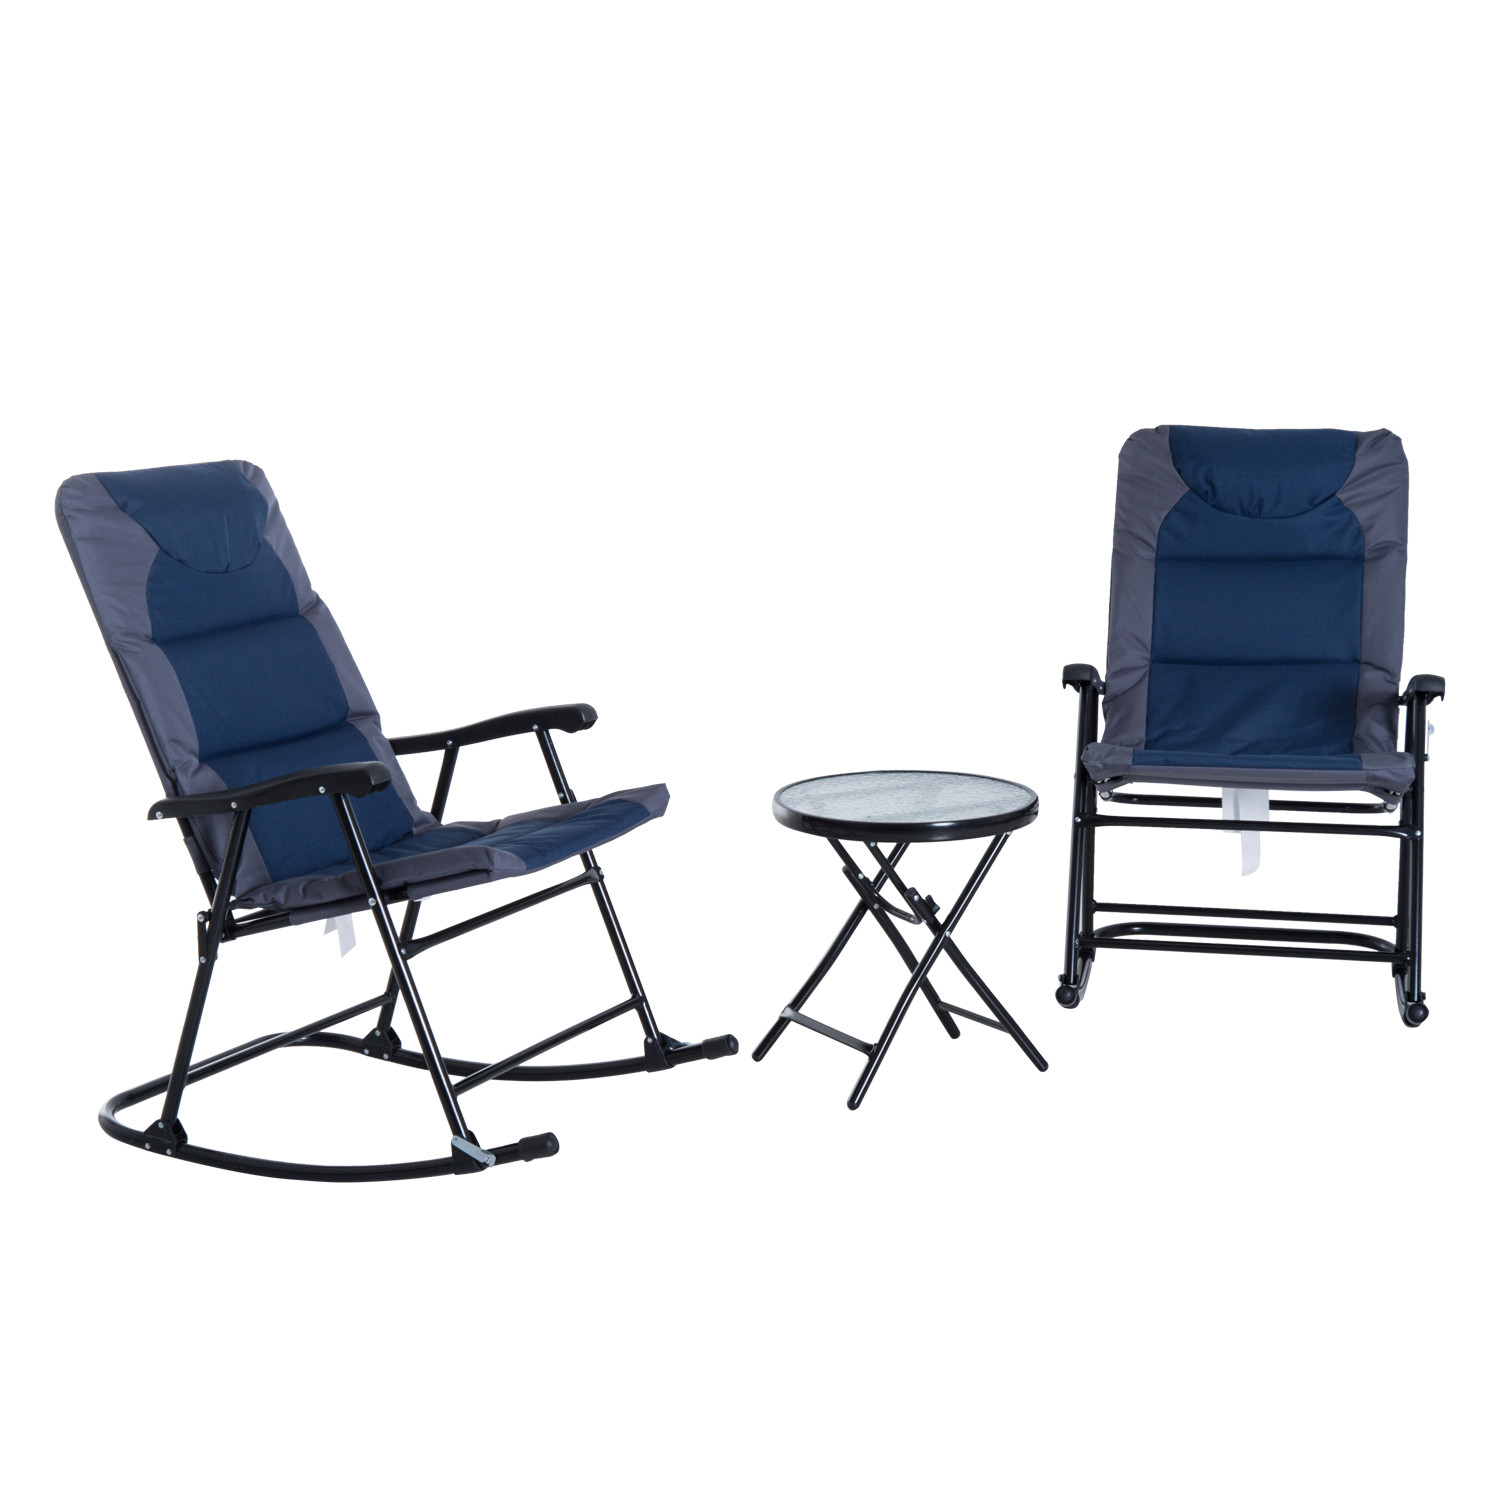 3 Piece Outdoor Folding Rocking Chair And Table Set Patio